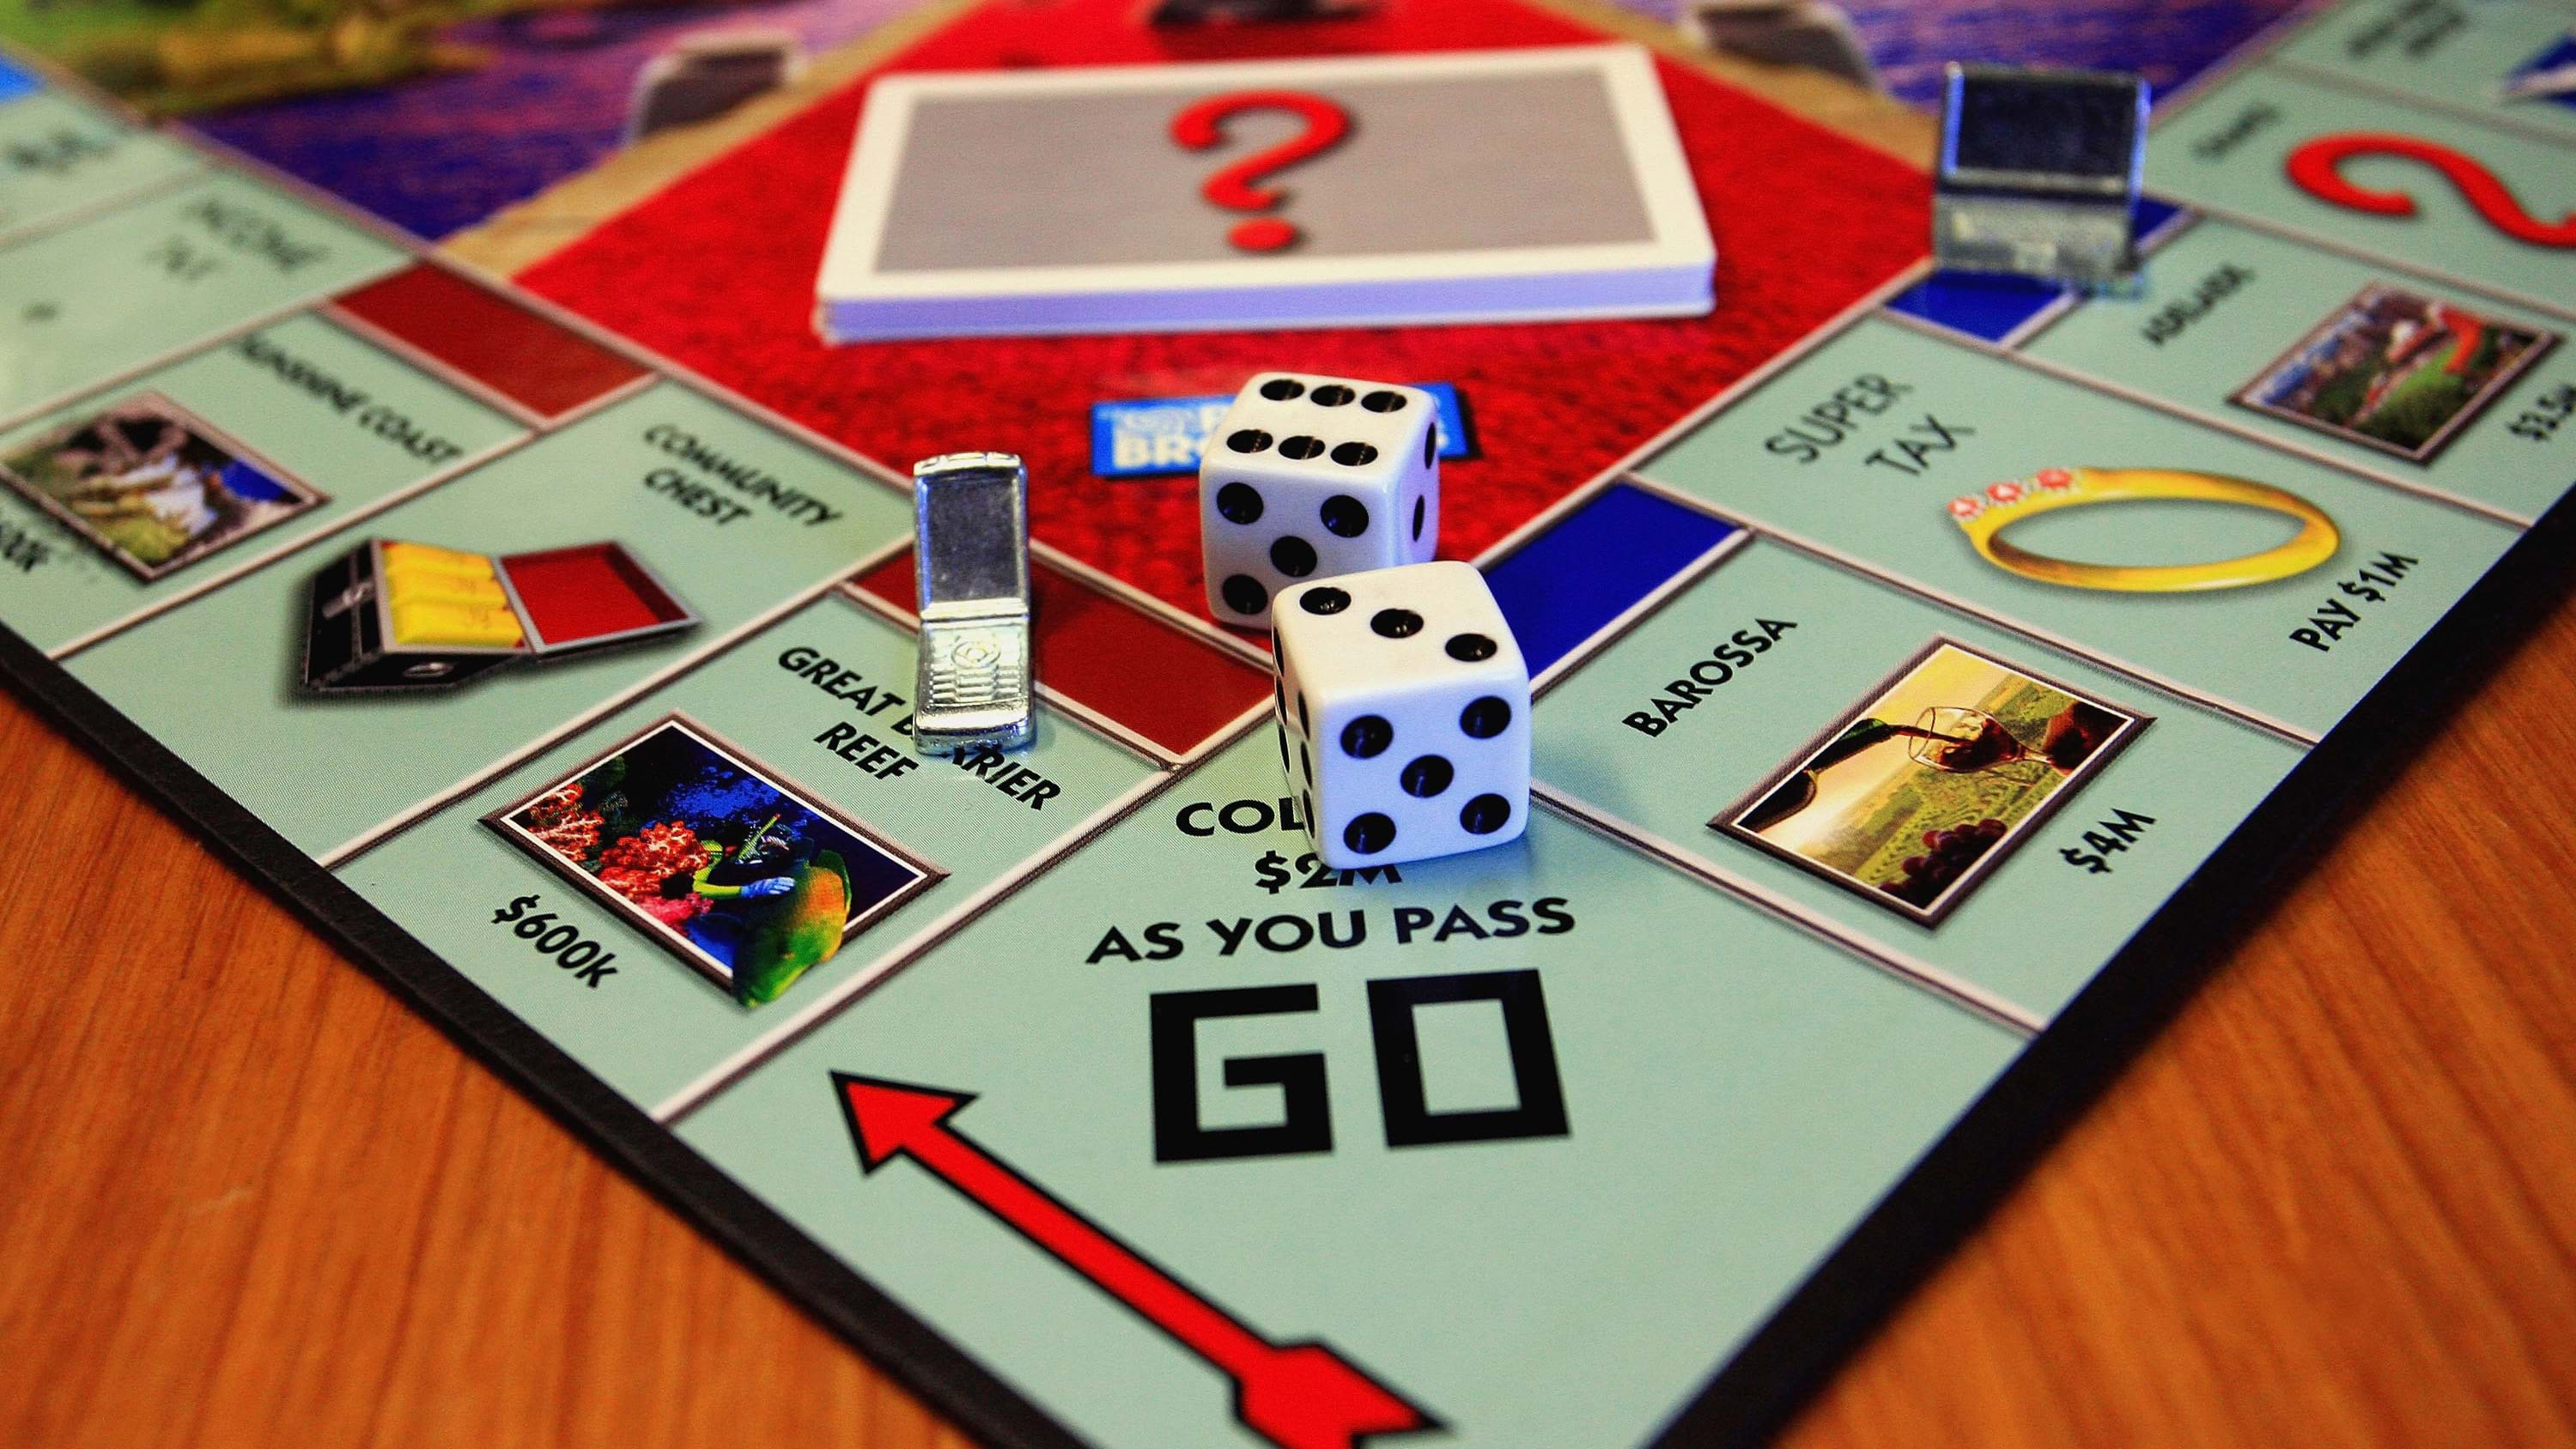 This New Version of Monopoly Wants You to Cheat